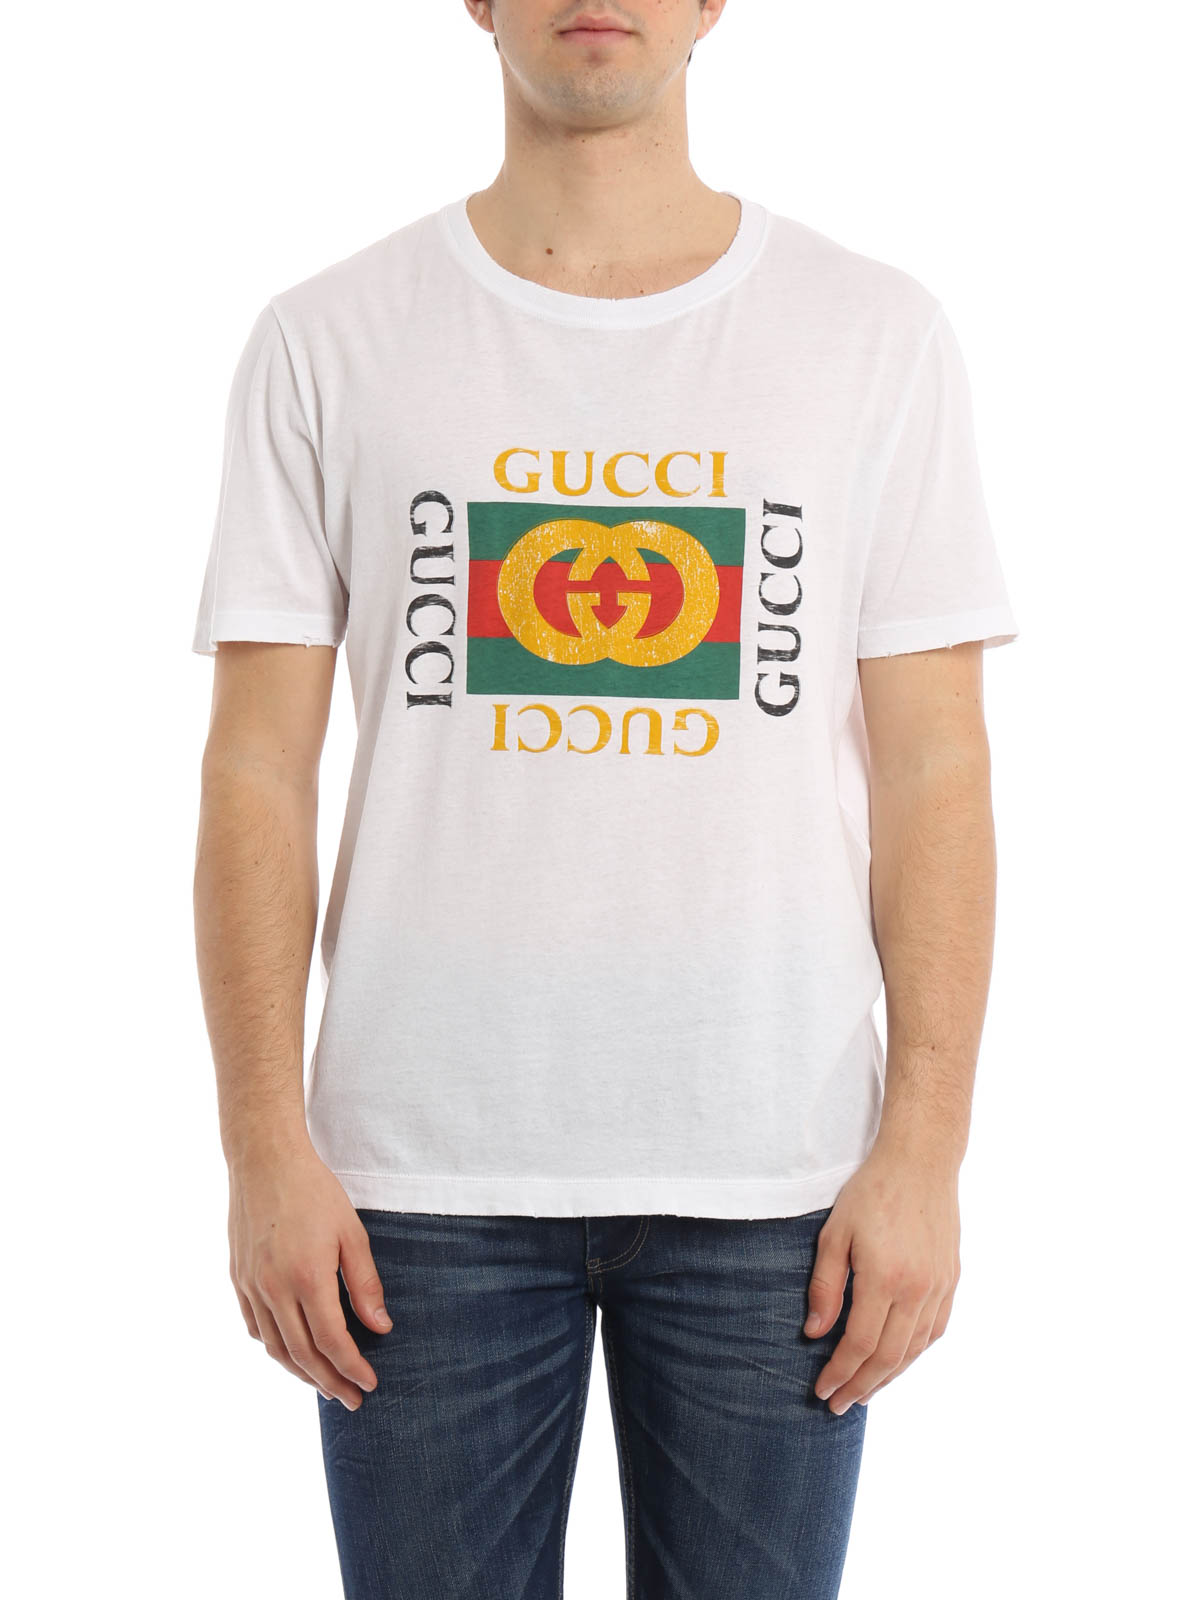 Vintage effect logo print t shirt by gucci t shirts ikrix for Tee shirt logo printing